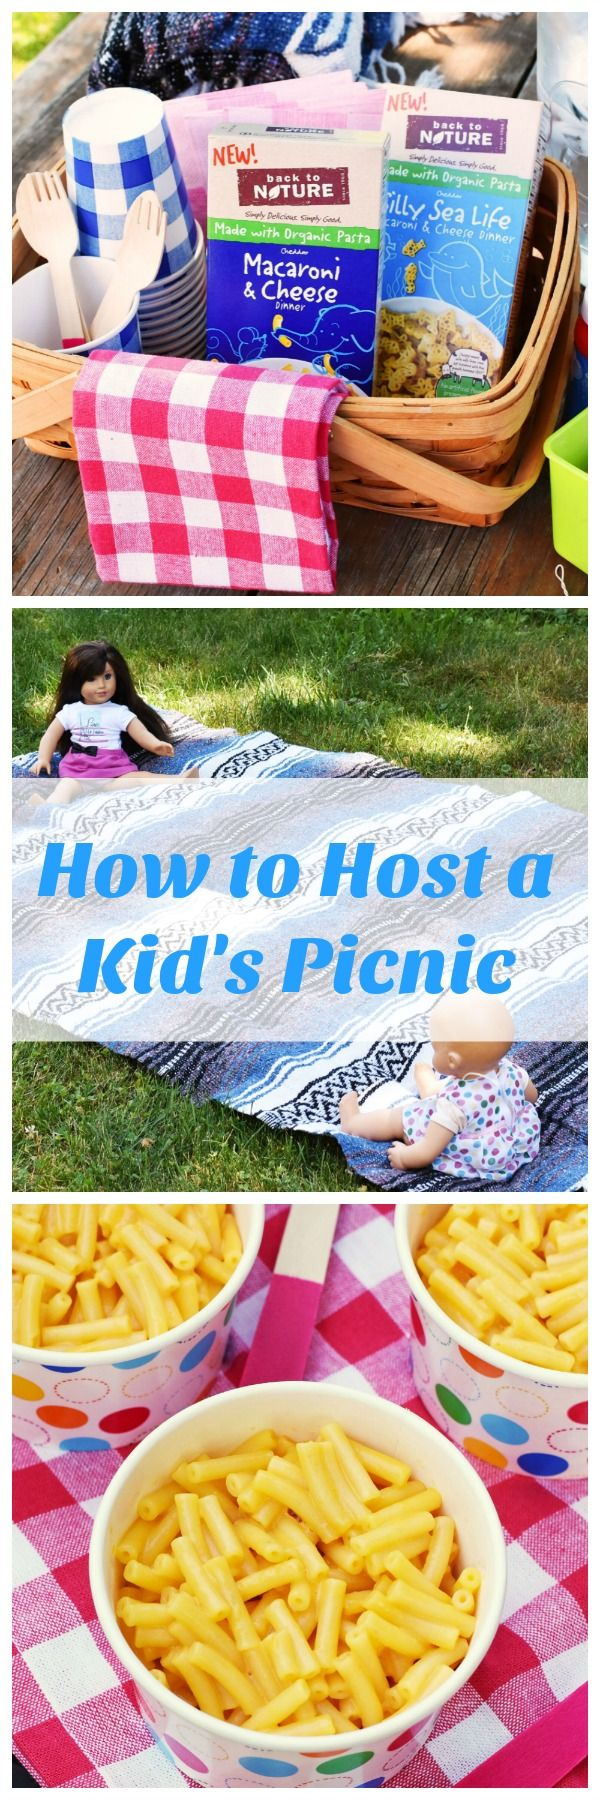 How to Host the Perfect Outdoor kid's picnic. Get some tips, ideas, and check out the perfect meal to serve! AD #BacktoPlay